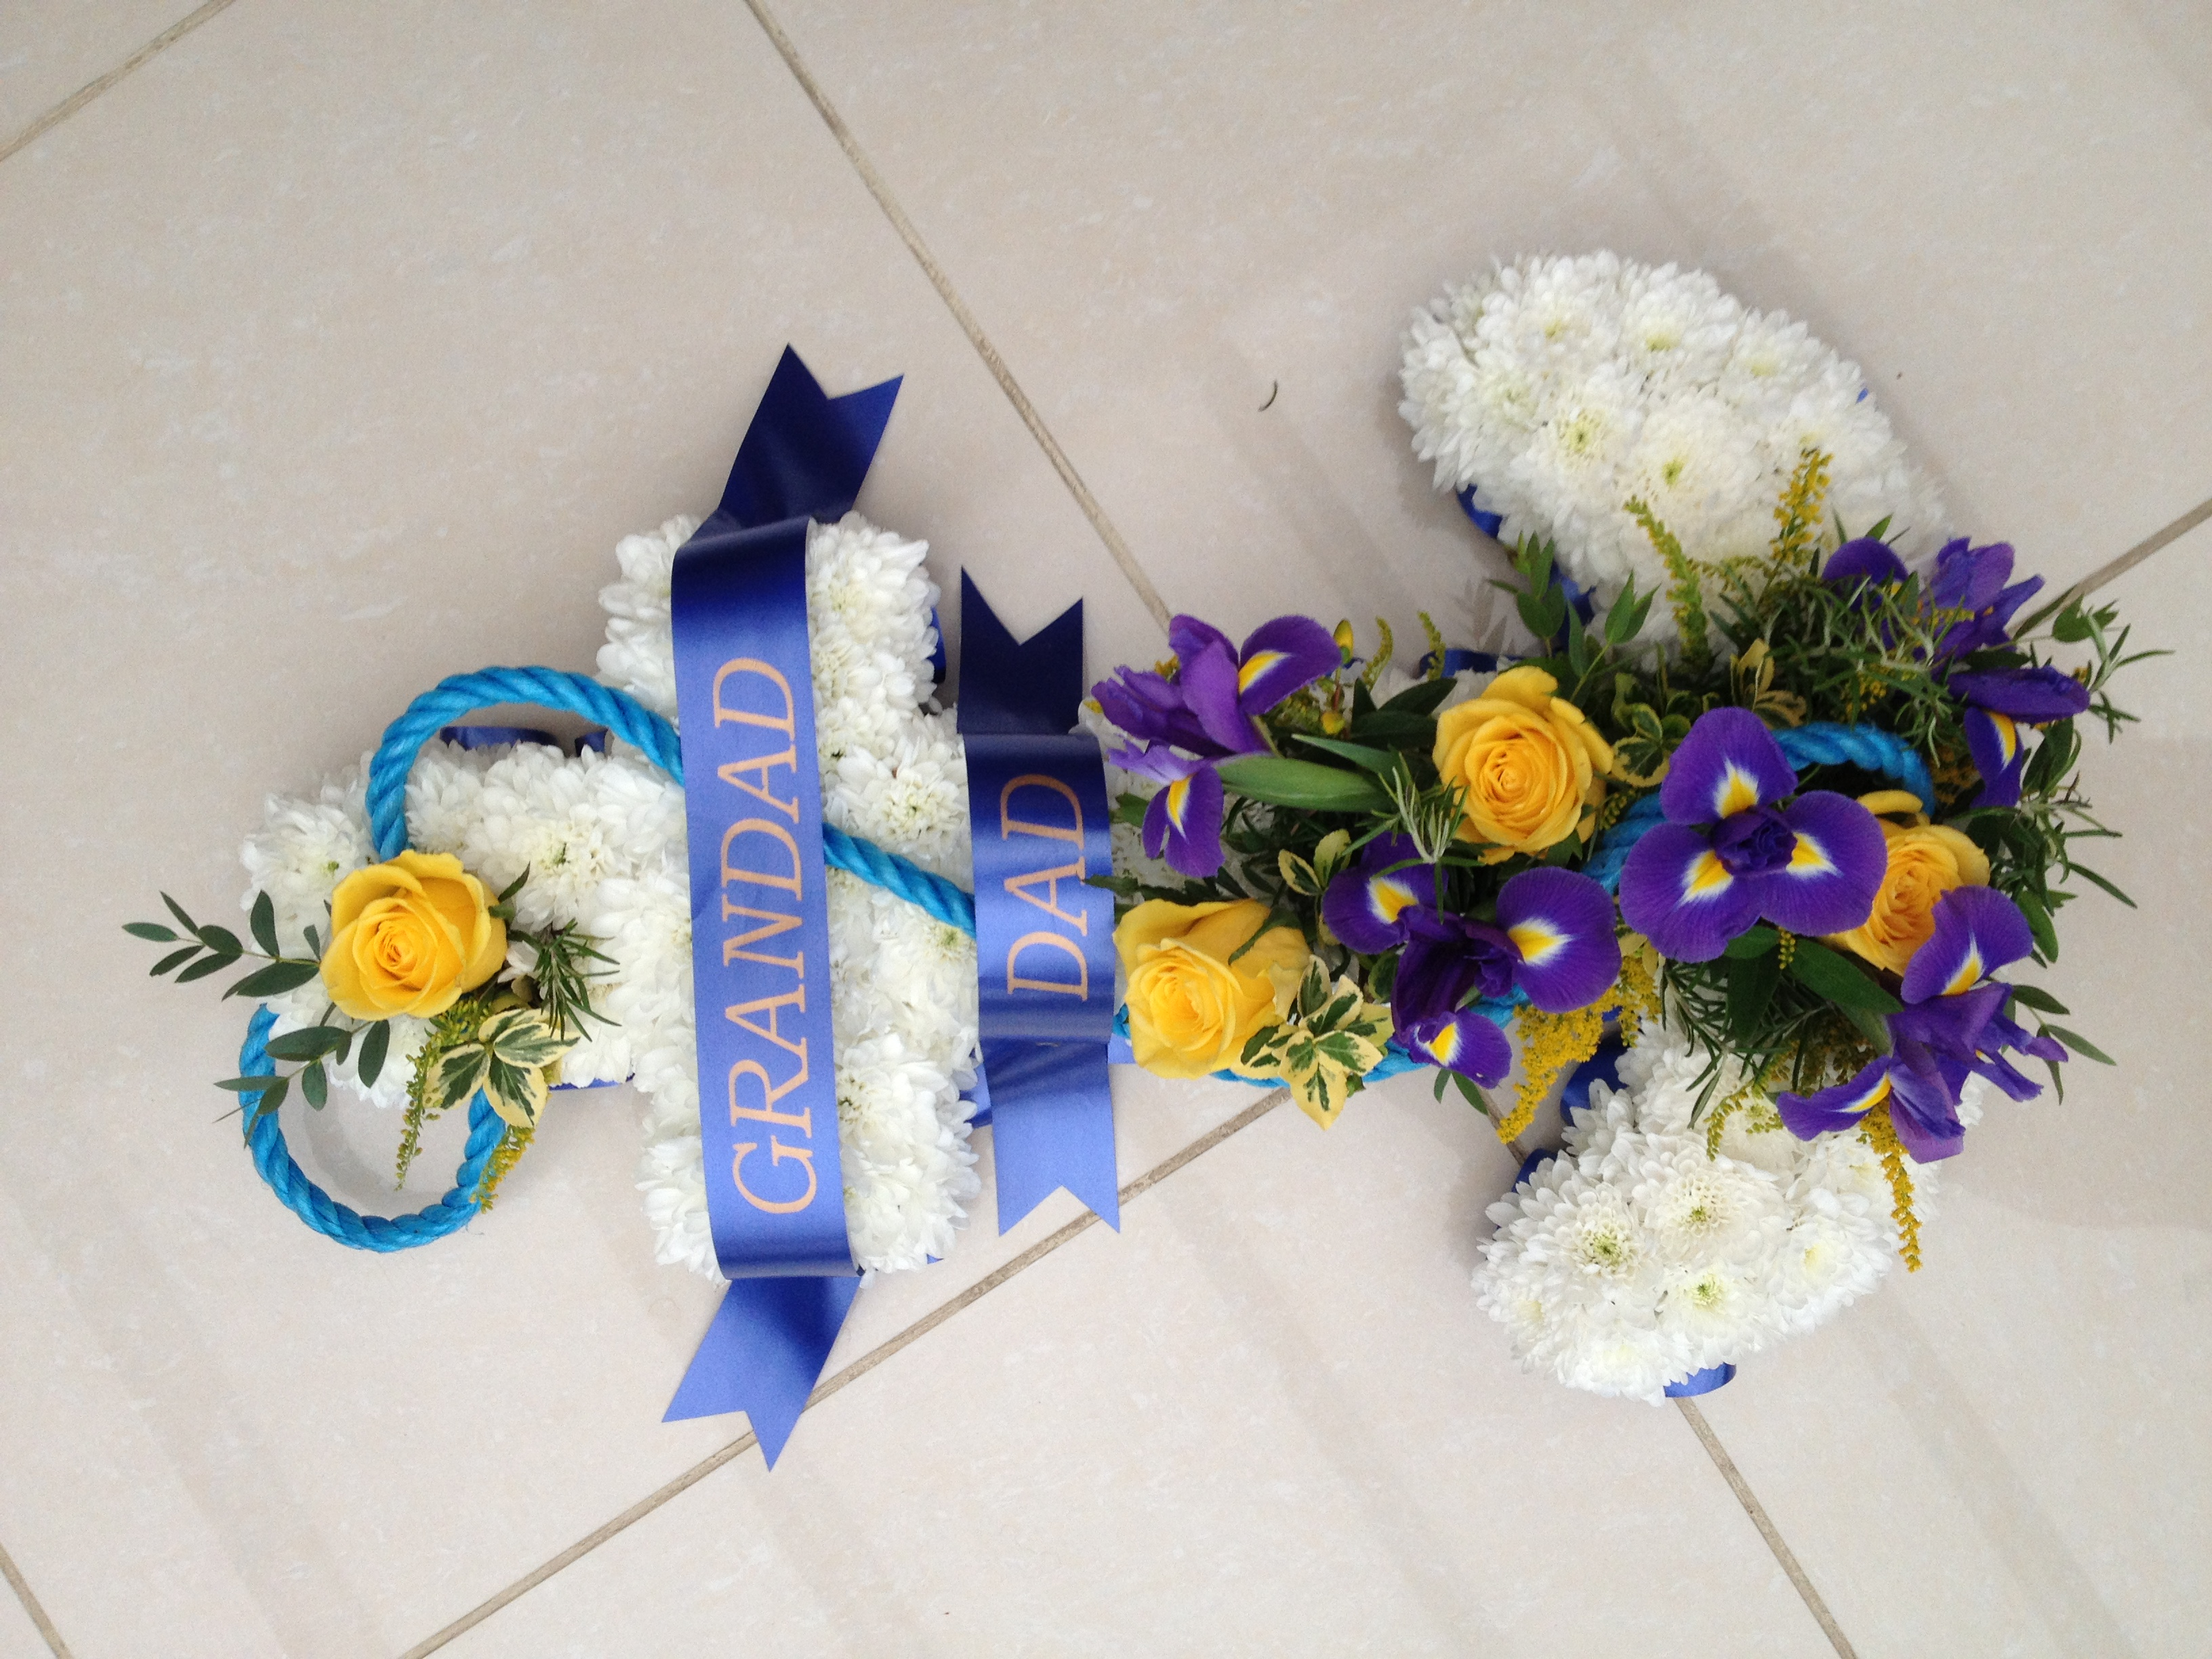 Blocked funeral tribute flowers a2 anchor 7500 izmirmasajfo Gallery